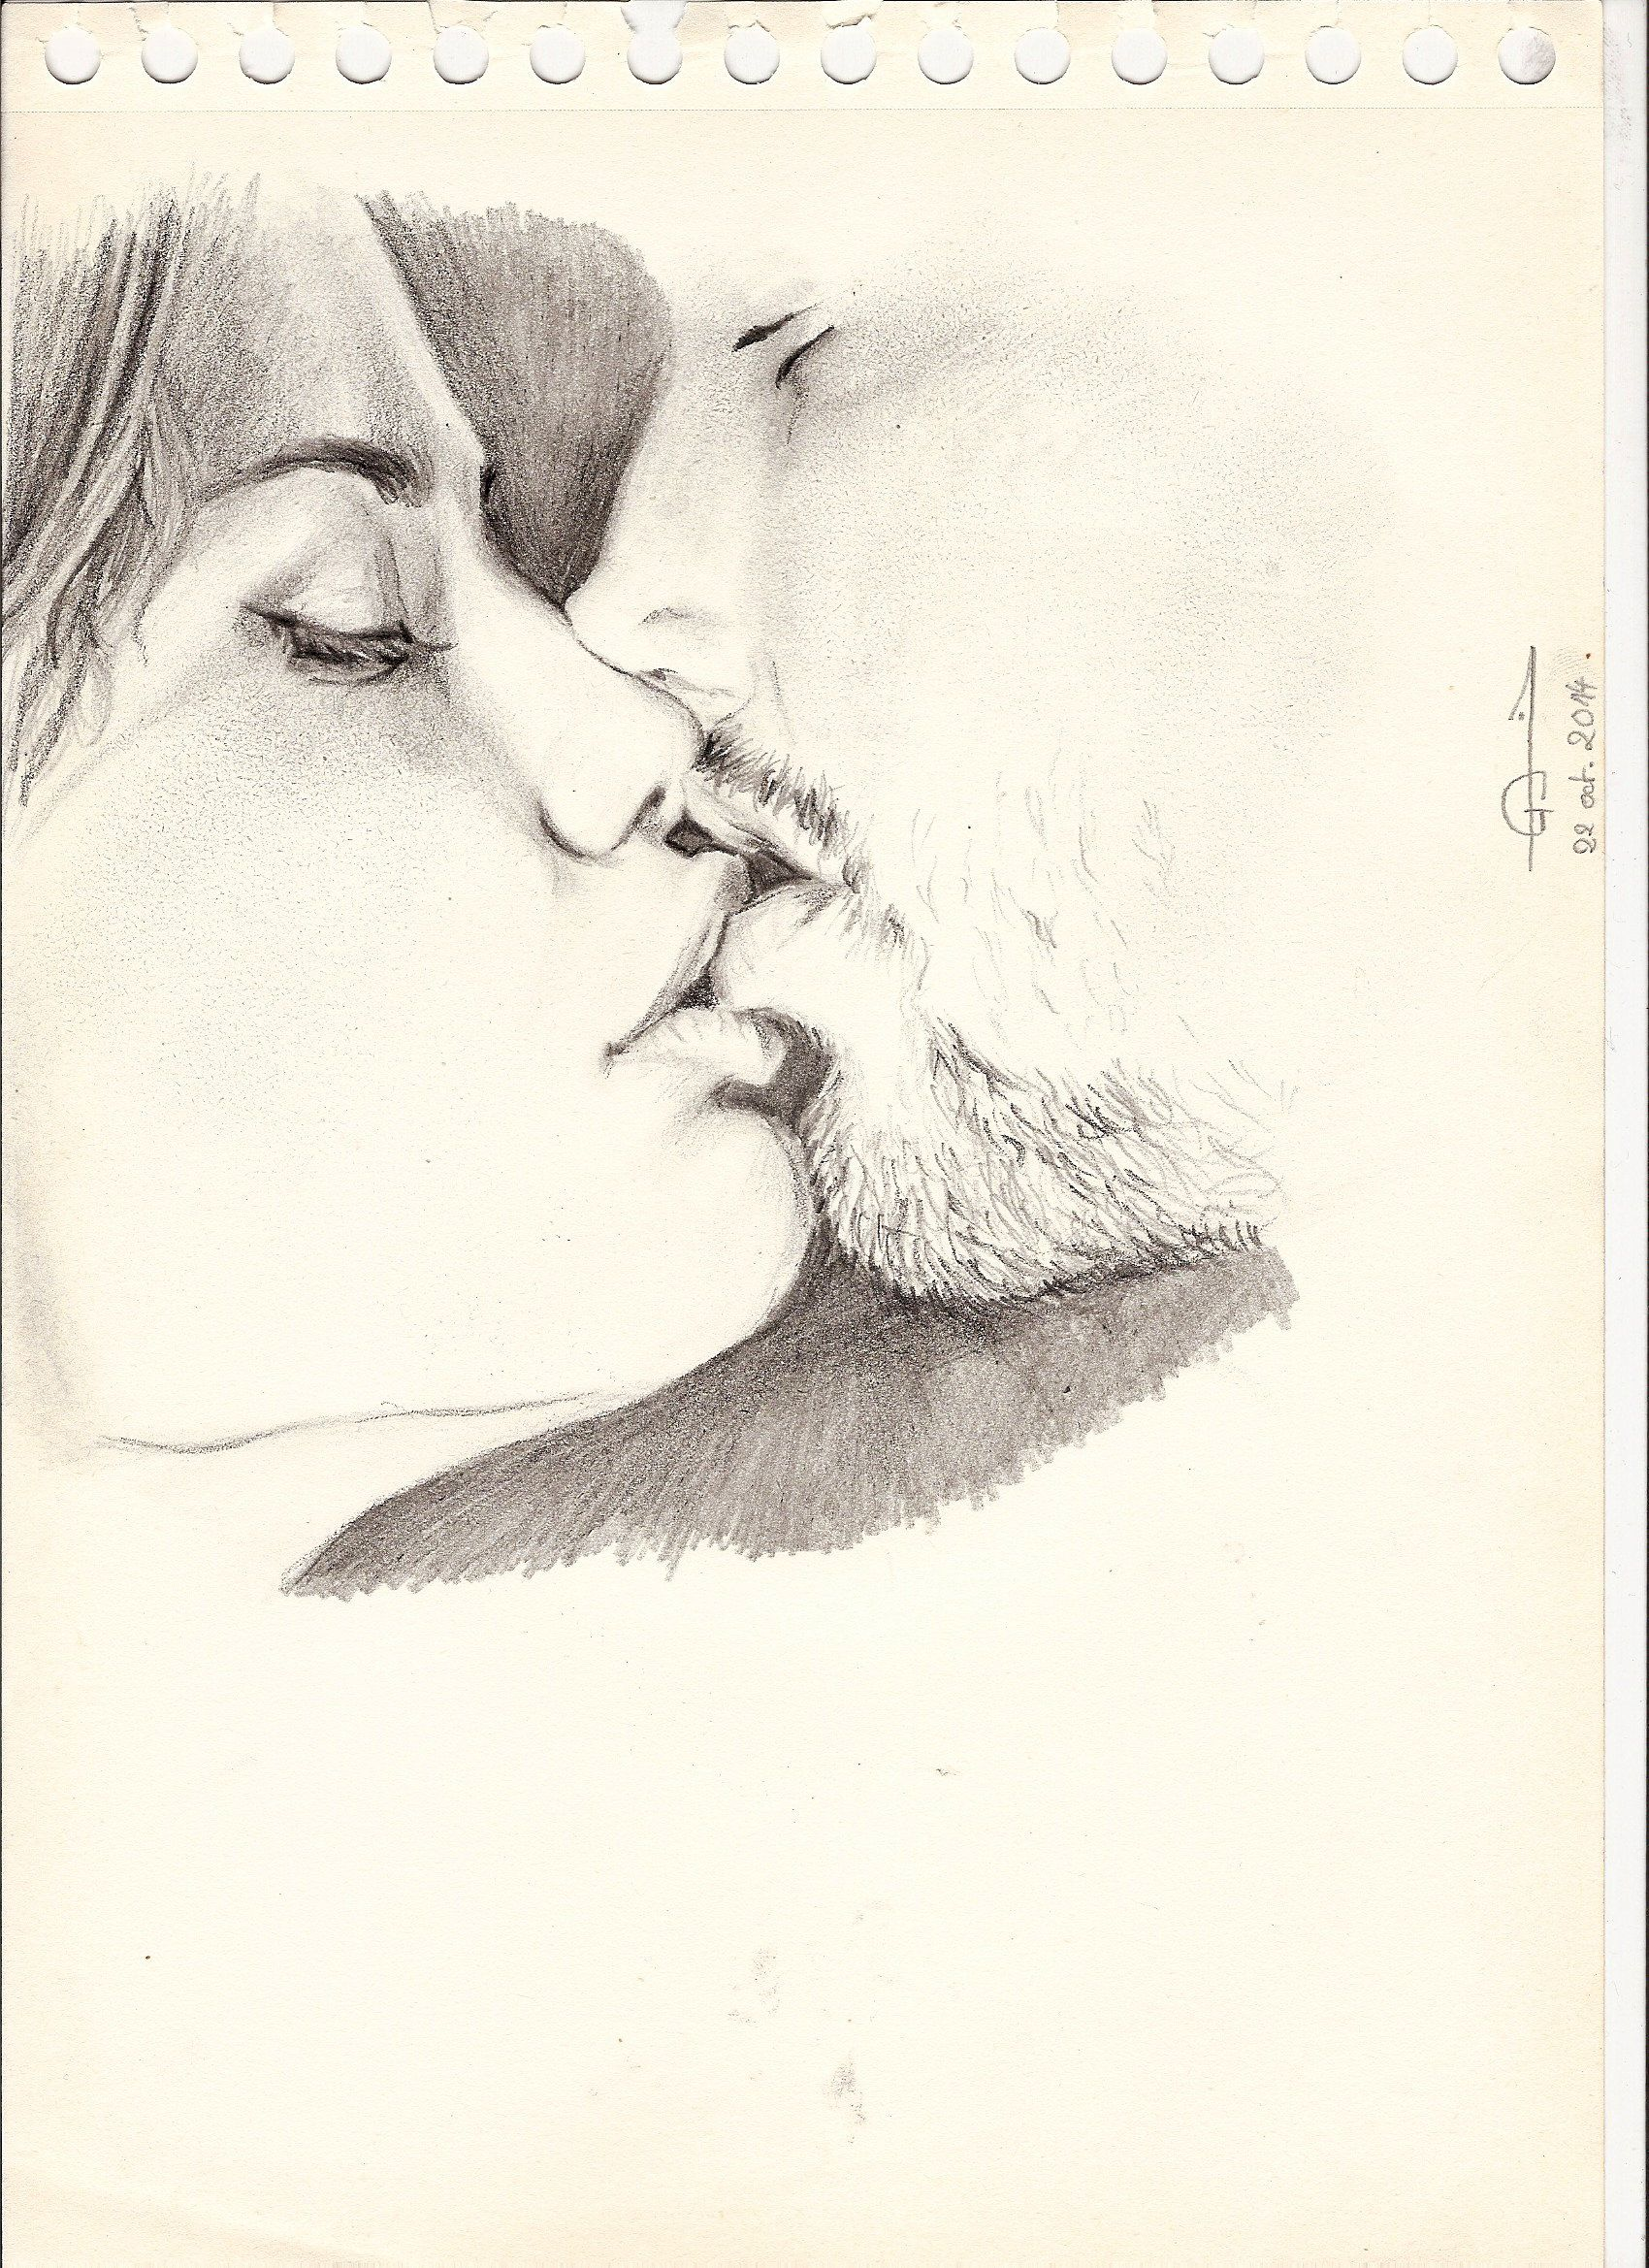 Drawing of lovers couple love sexy kiss dessin art artwork pencils portrait sketch pencil drawings of